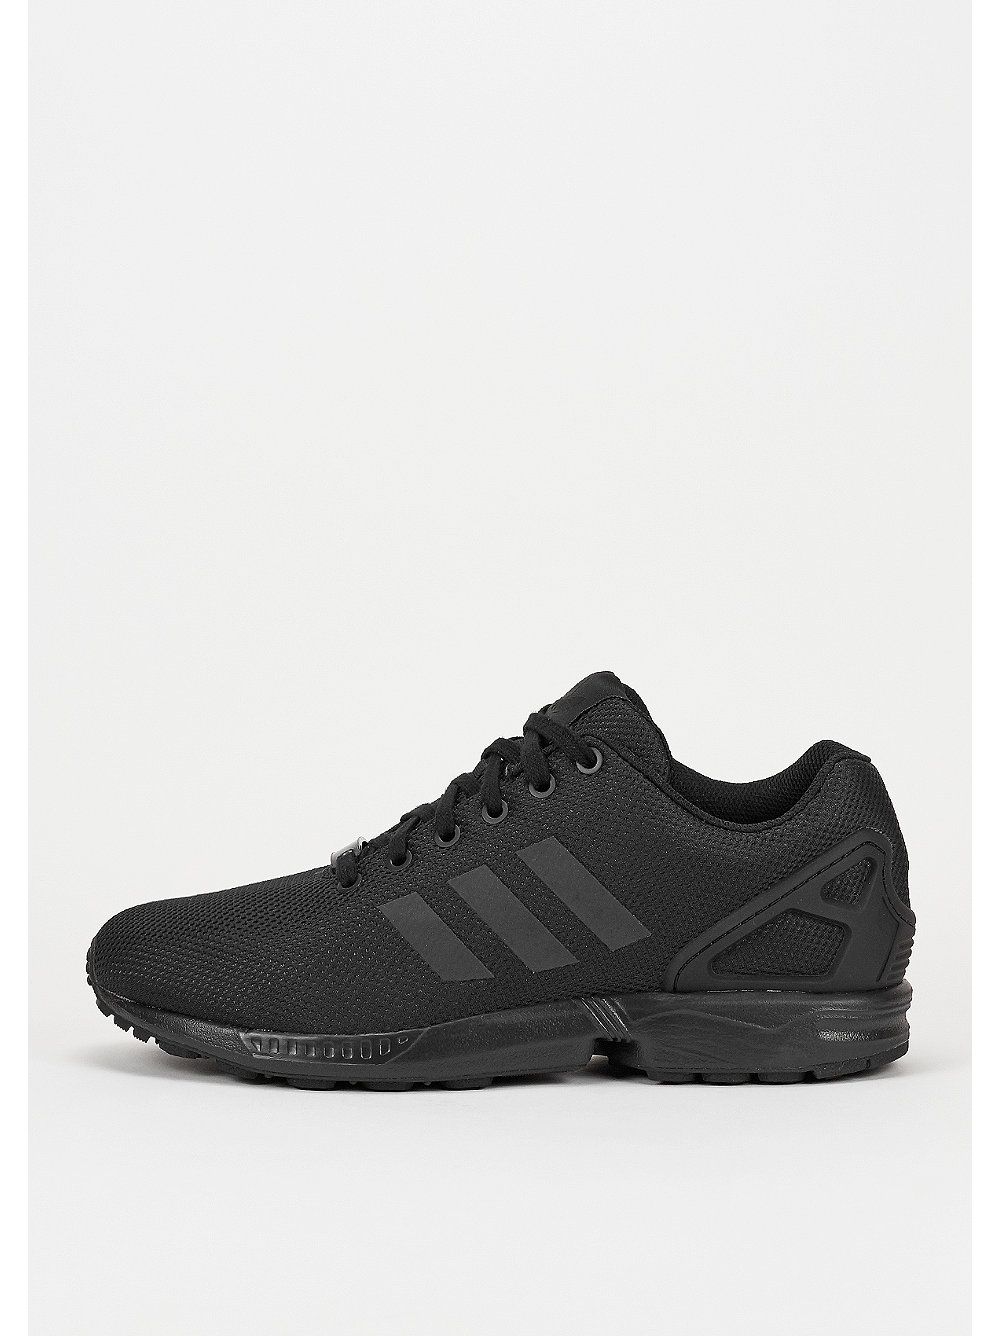 adidas originals zx flux schuhe s32279 damen